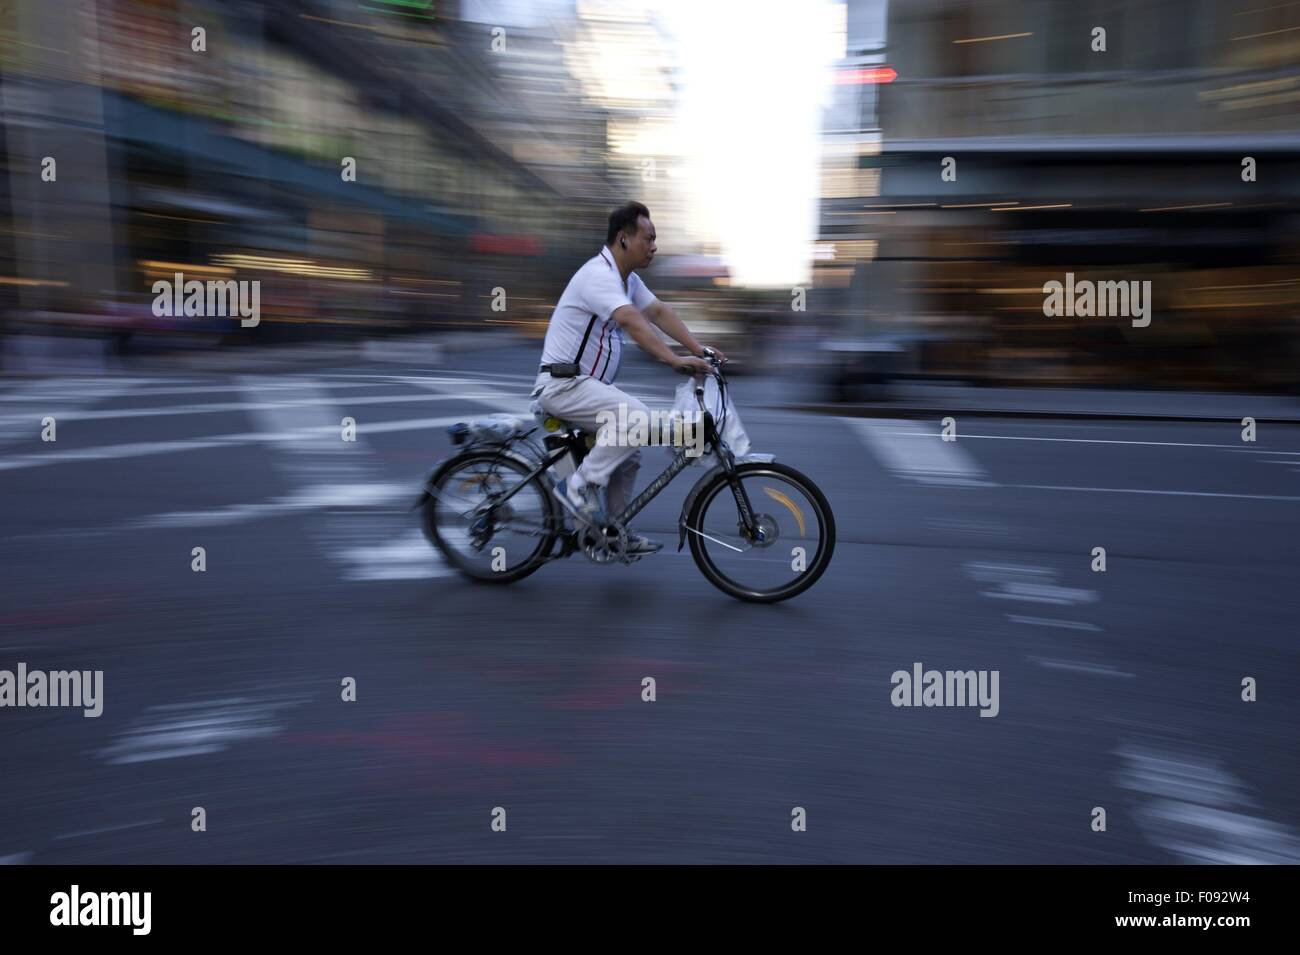 Man riding bicycle on road, blurred motion - Stock Image